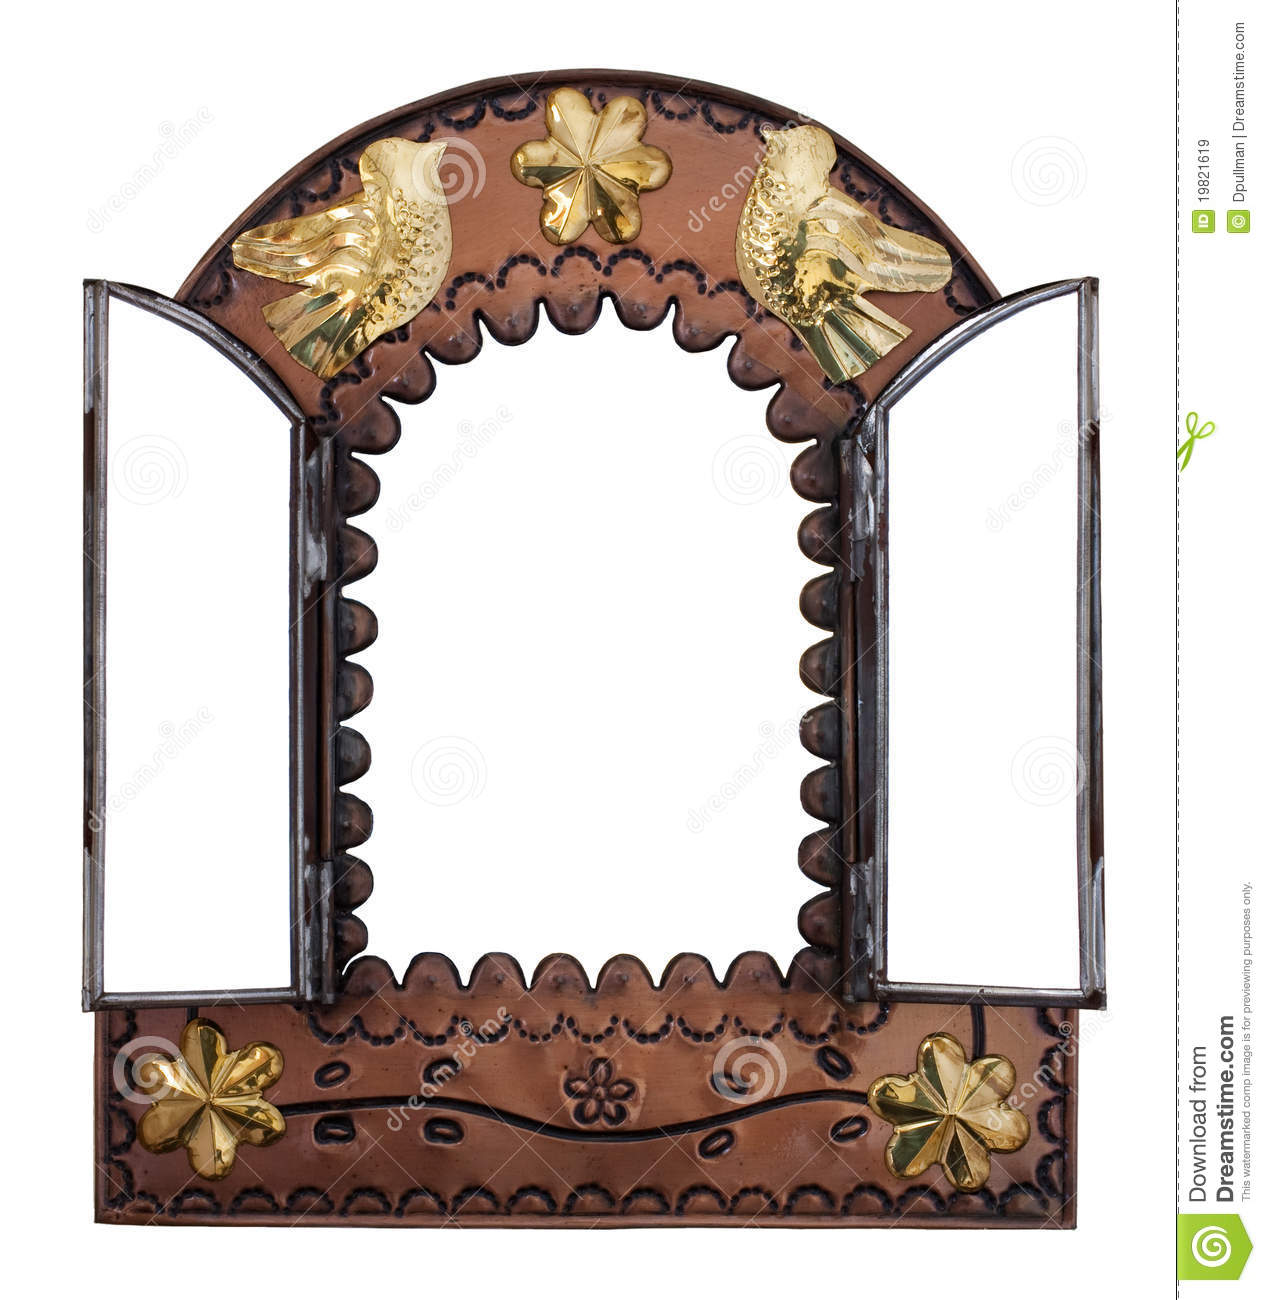 Wall Mirror Decor decorative mirrors on the wall stock images - image: 1738124